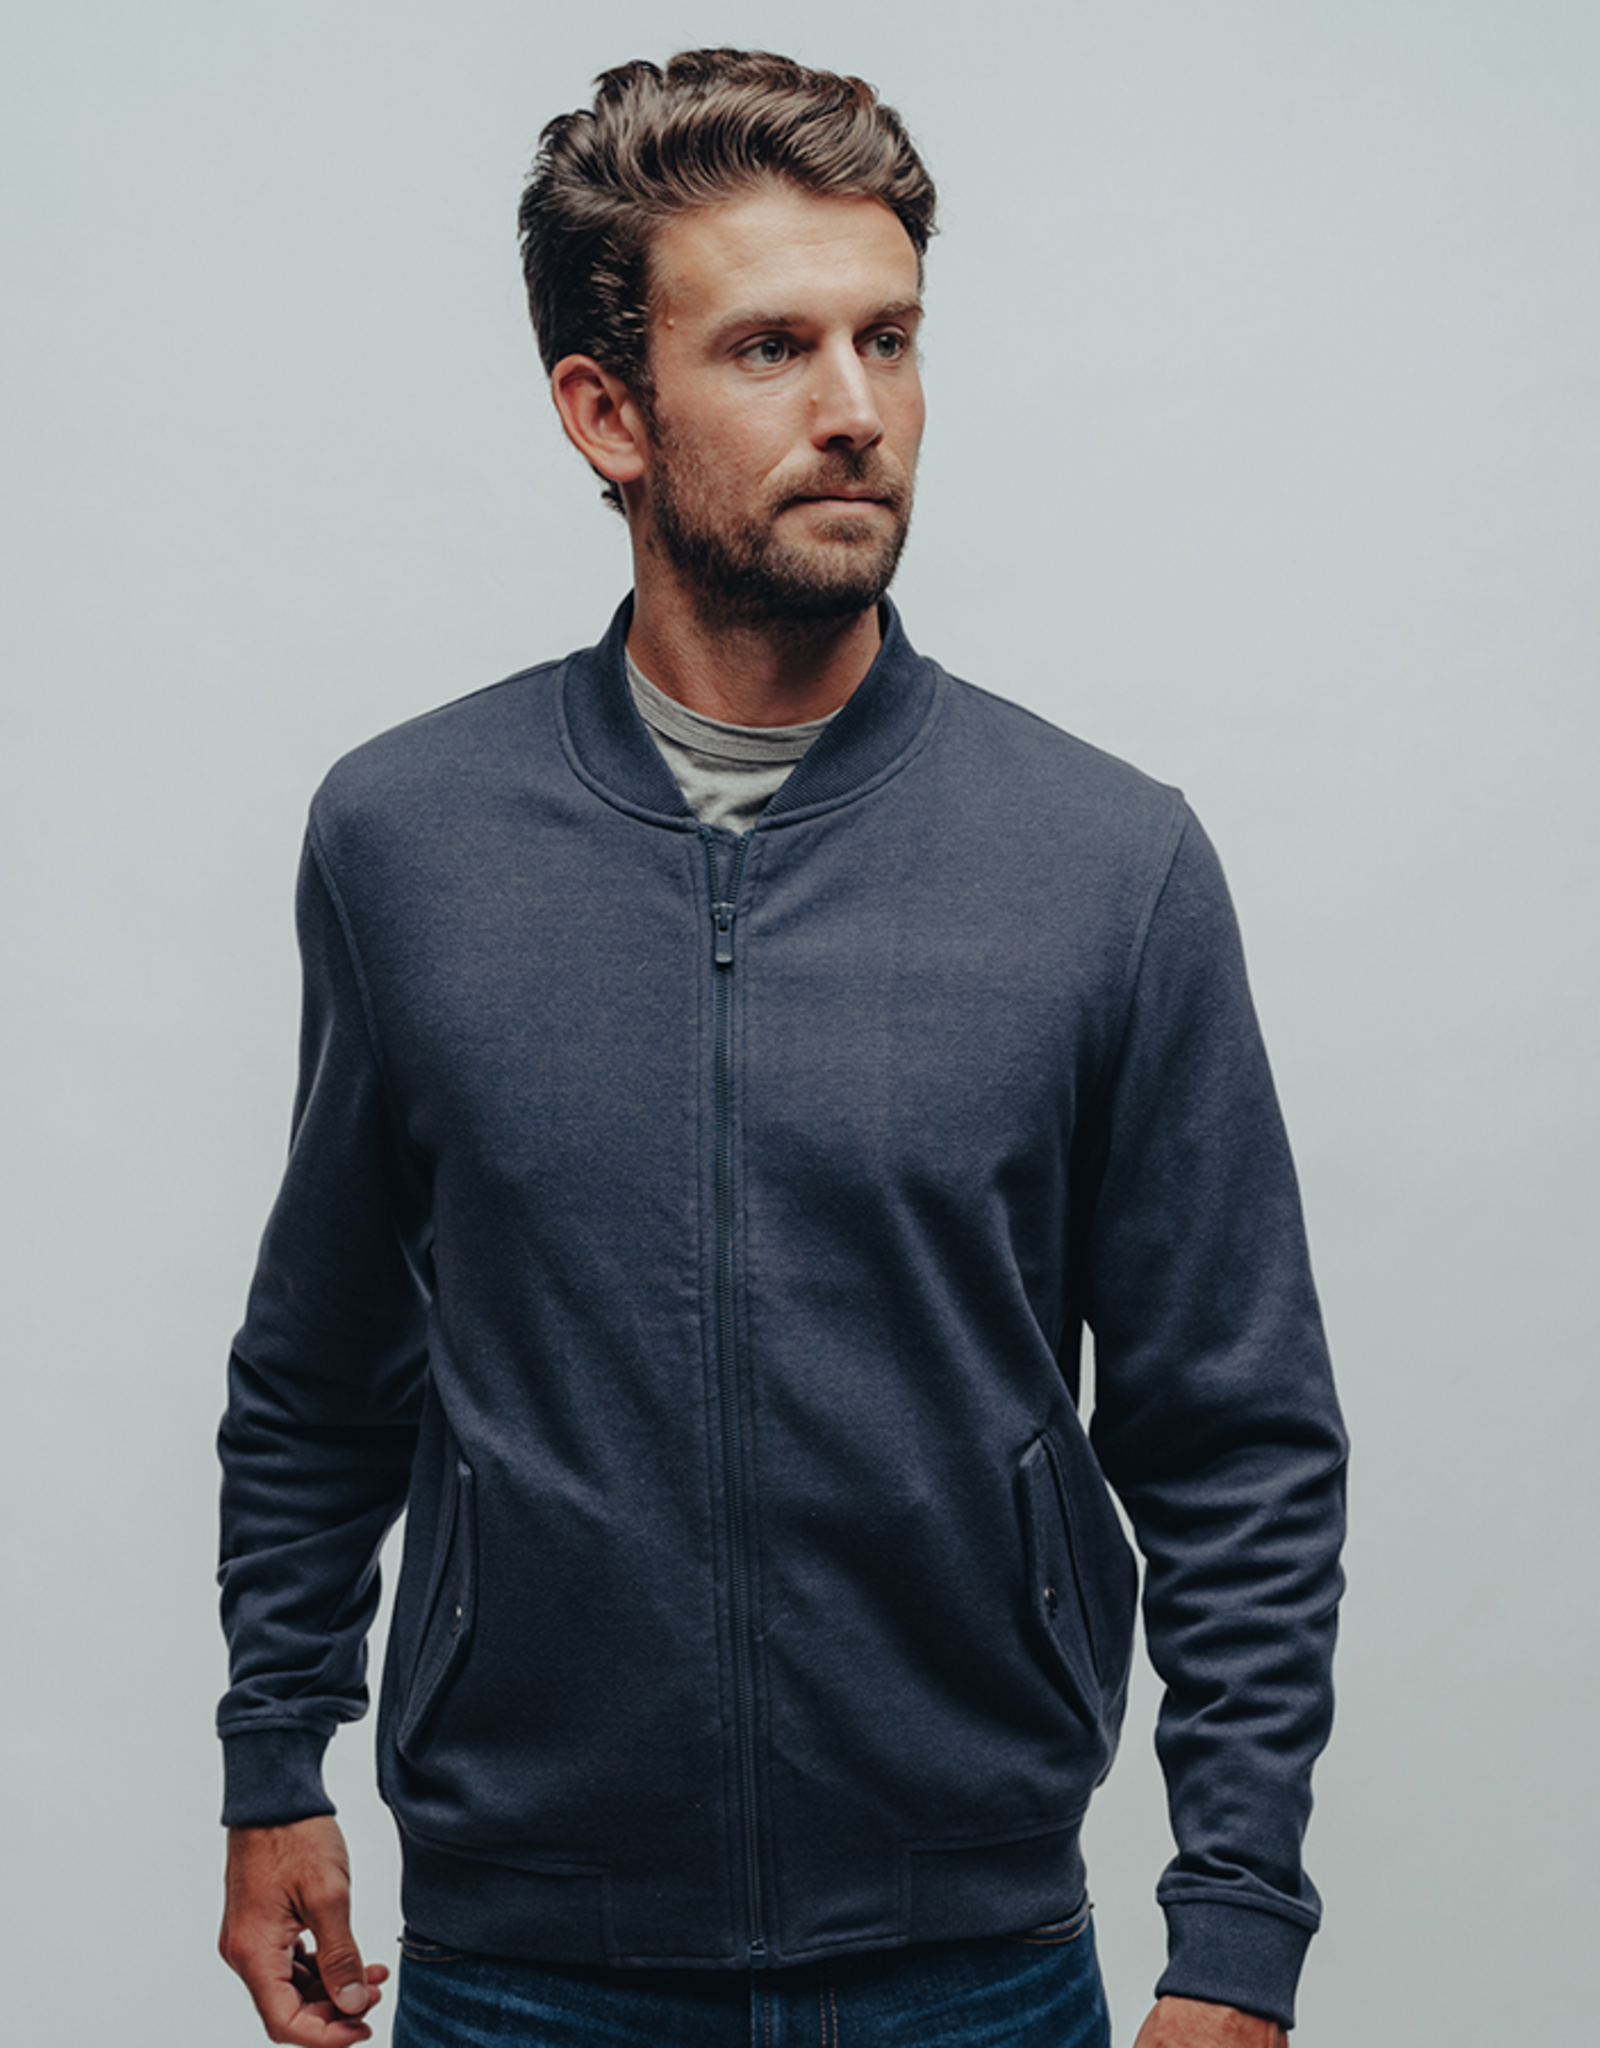 The Normal Brand Puremeso Bomber